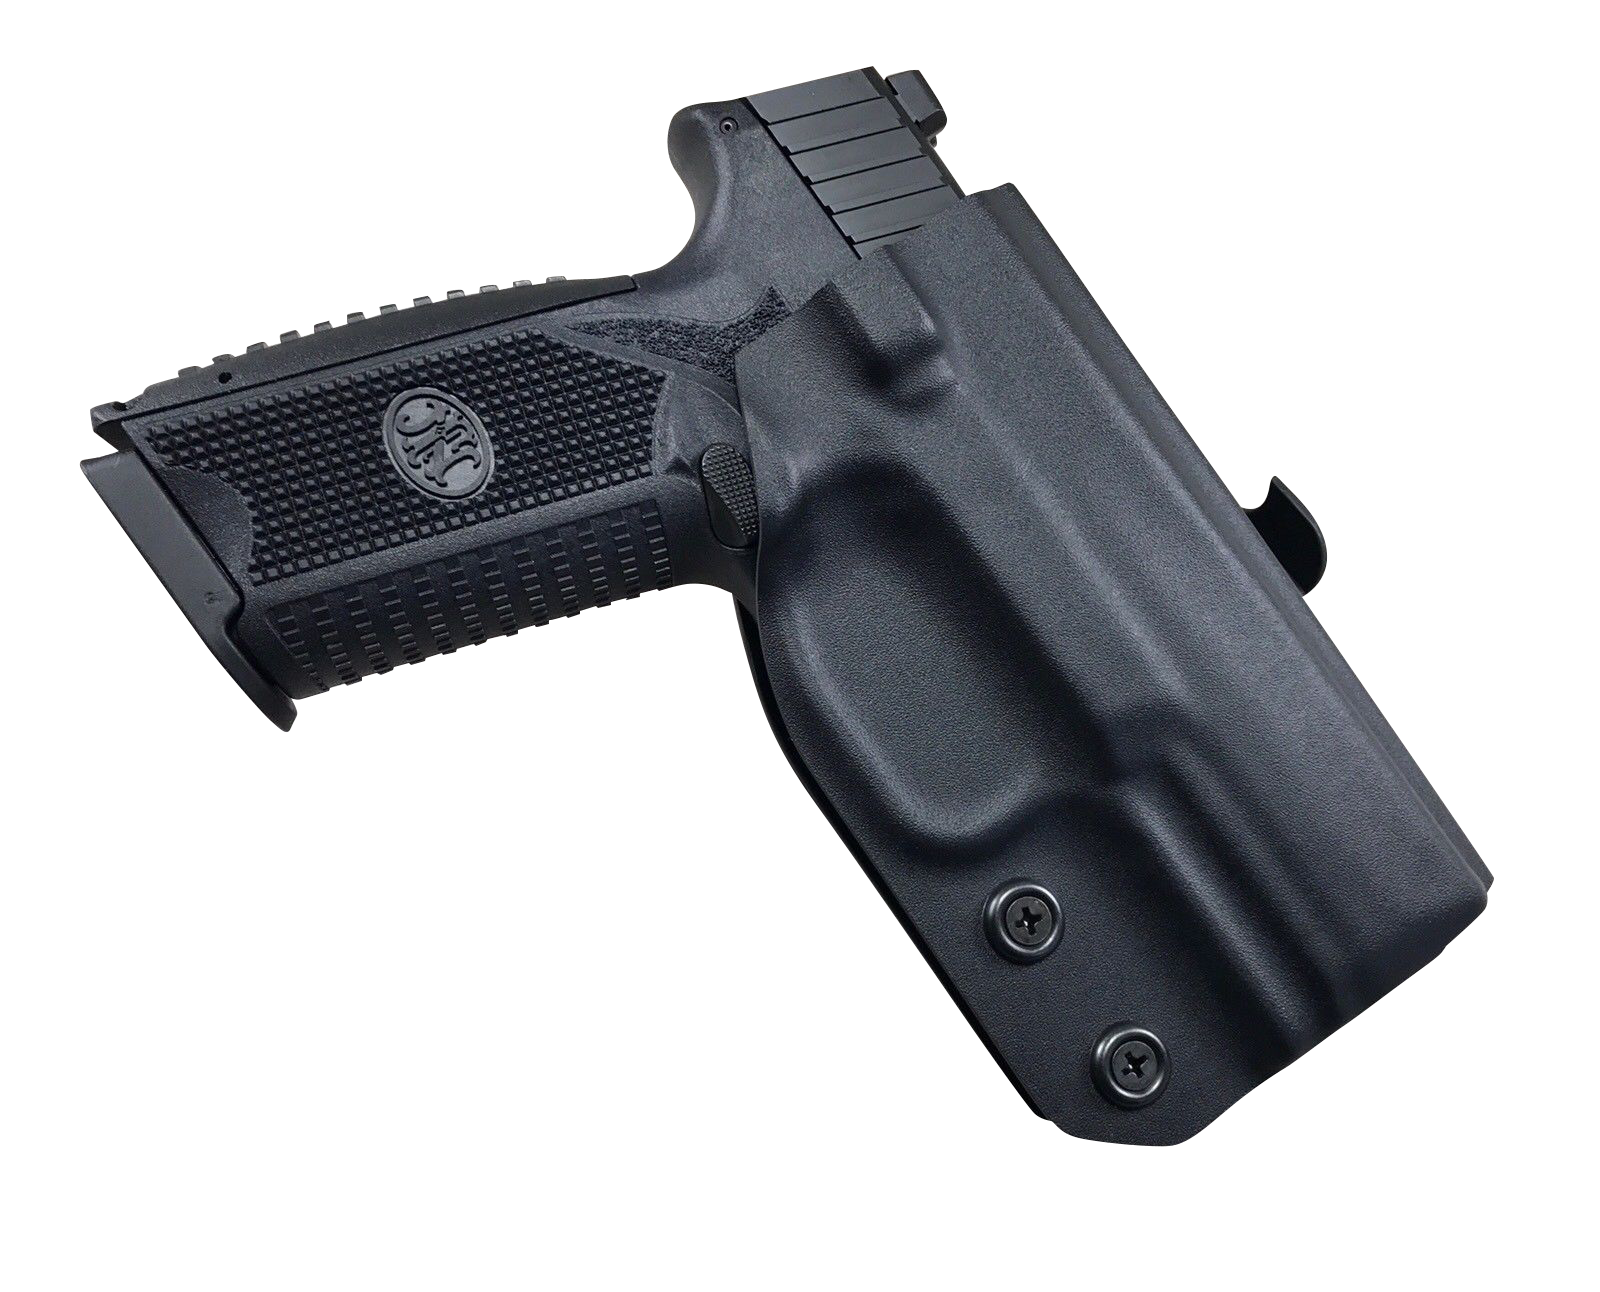 white-fn-509-sdh-swift-draw-holster-1.png